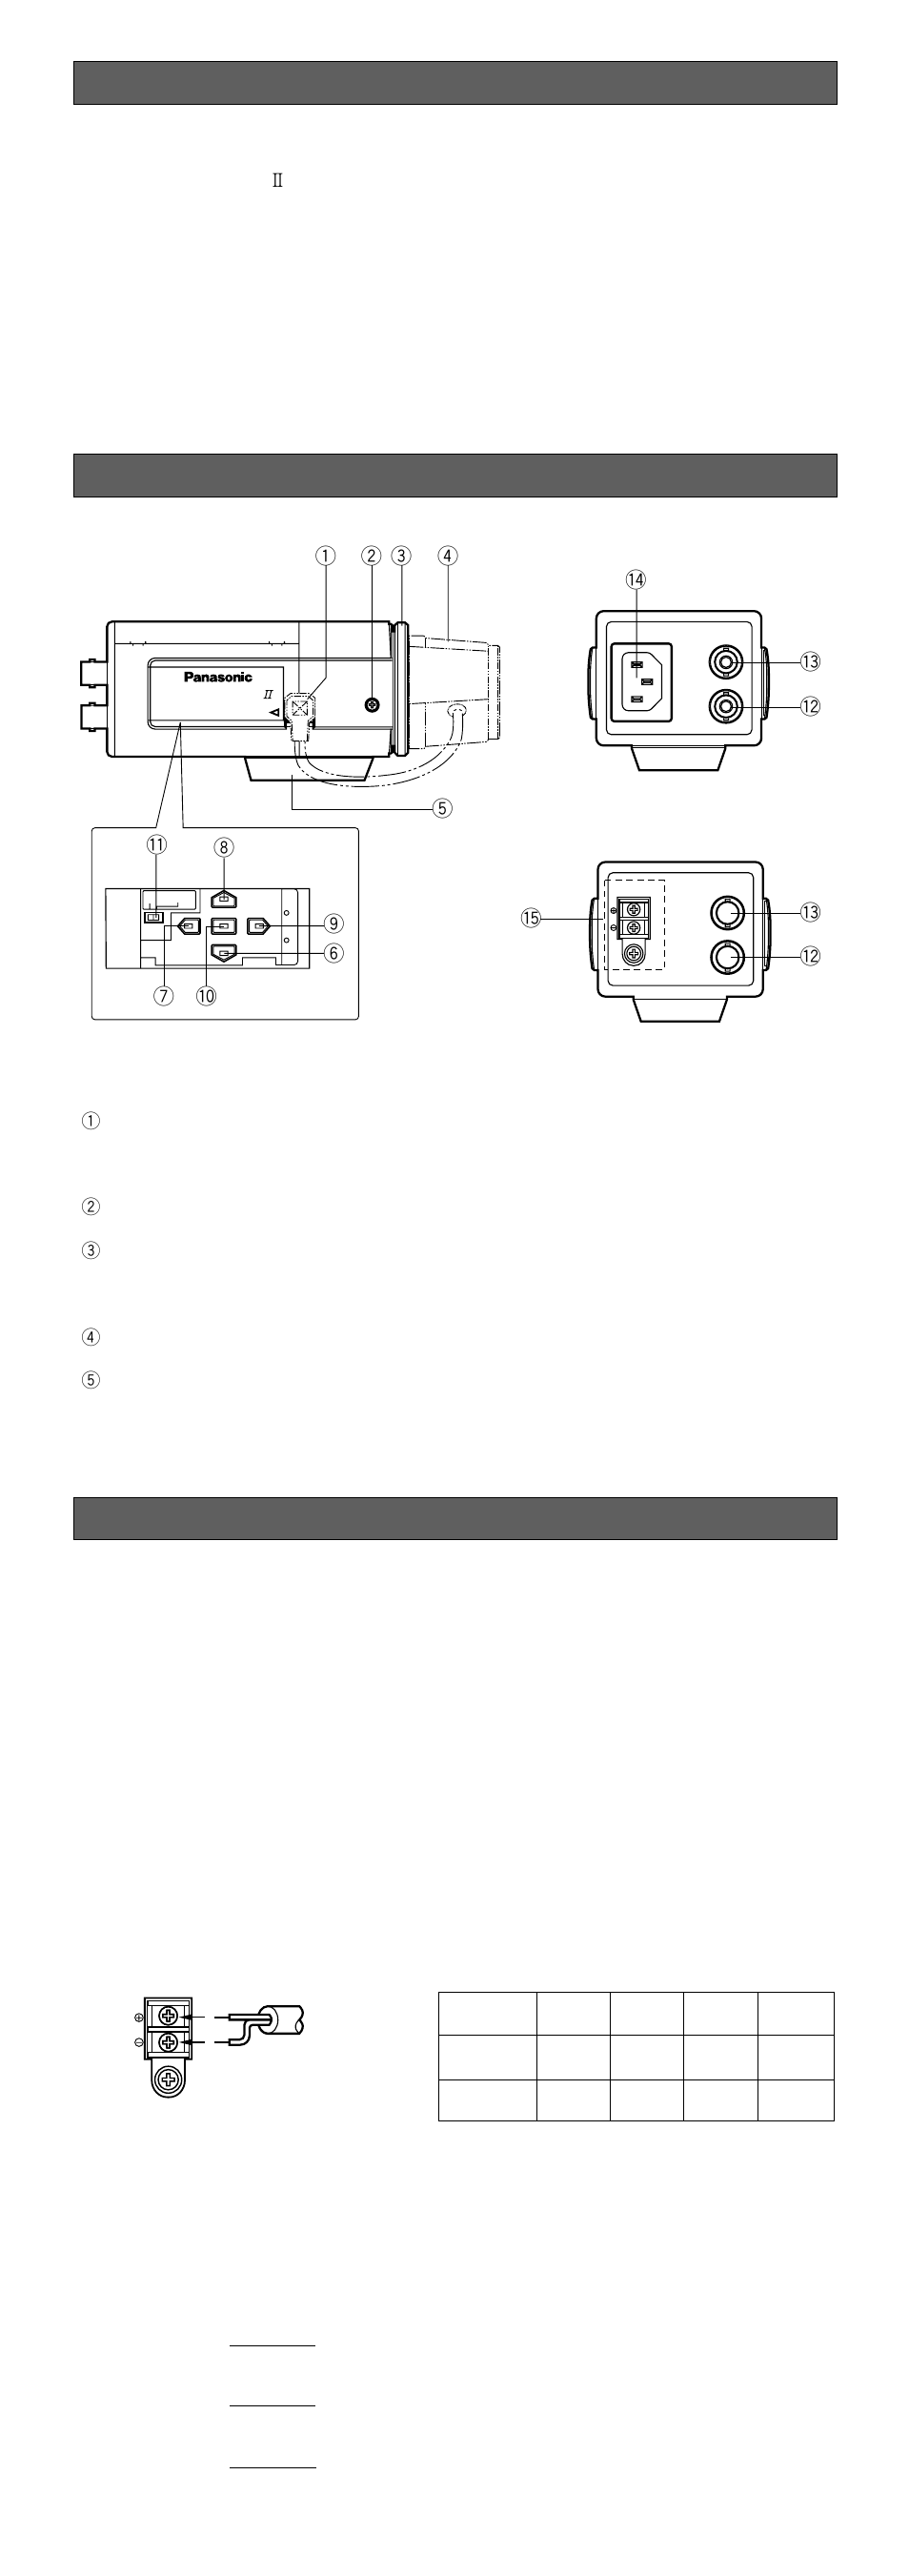 Connections Panasonic Wv Cp464 User Manual Page 2 11 Genlock Wiring Diagram